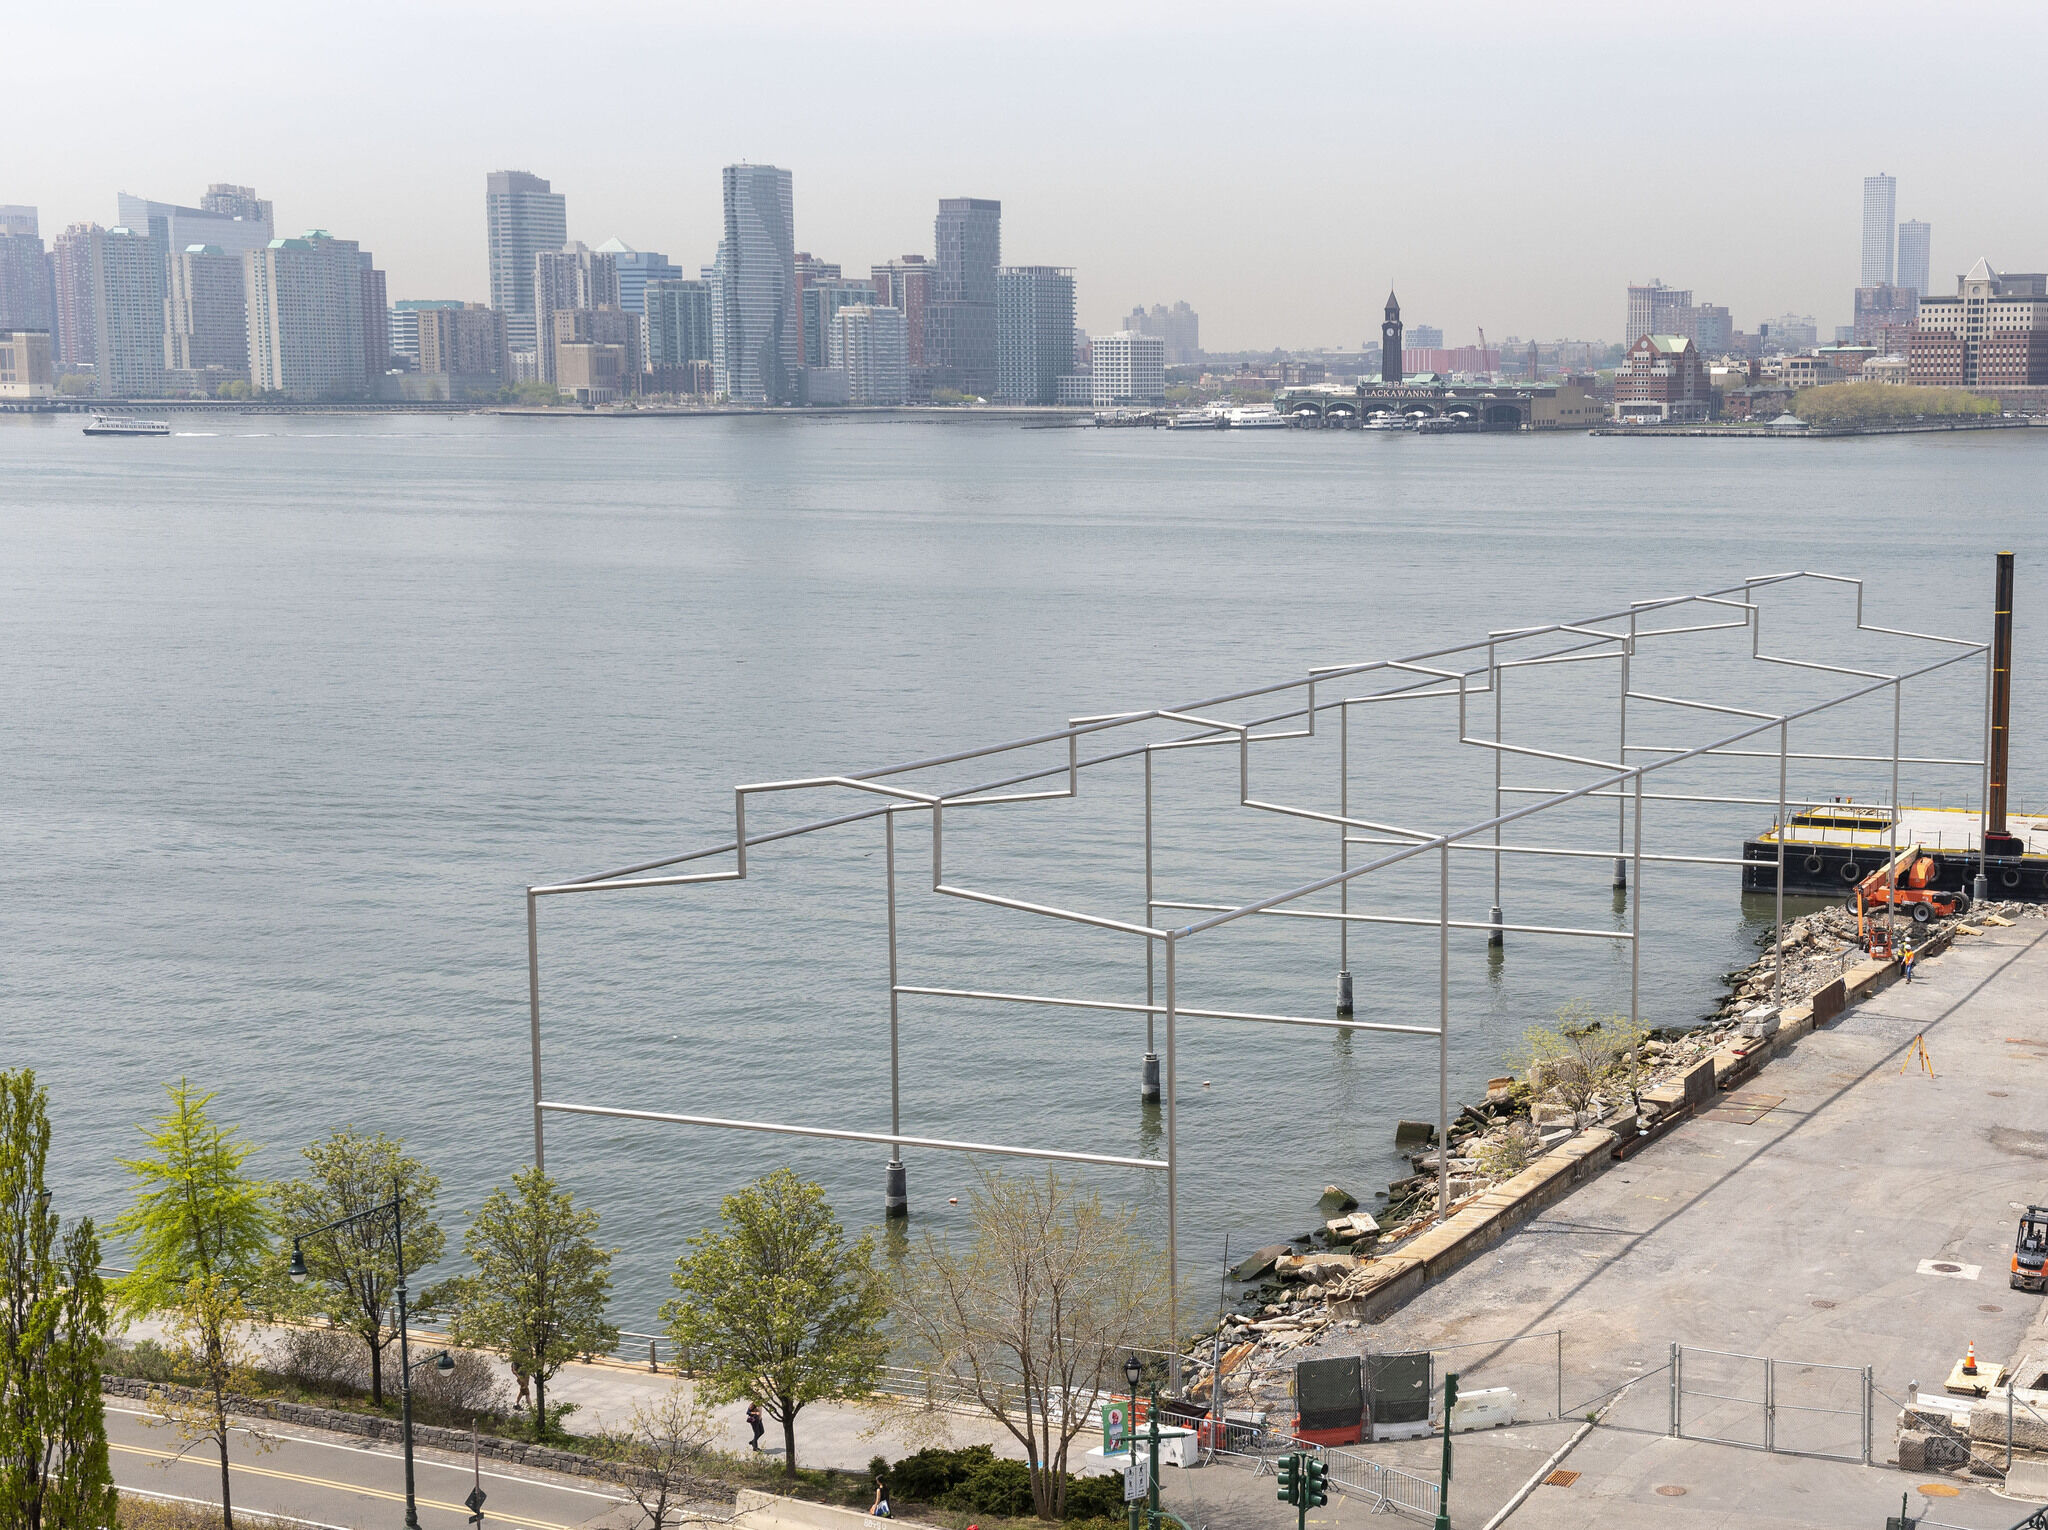 Birds-eye view of large steel sculpture in the shape of a building outline, extending from the Manhattan shoreline into the Hudson River, with a view of the New Jersey skyline in the background.